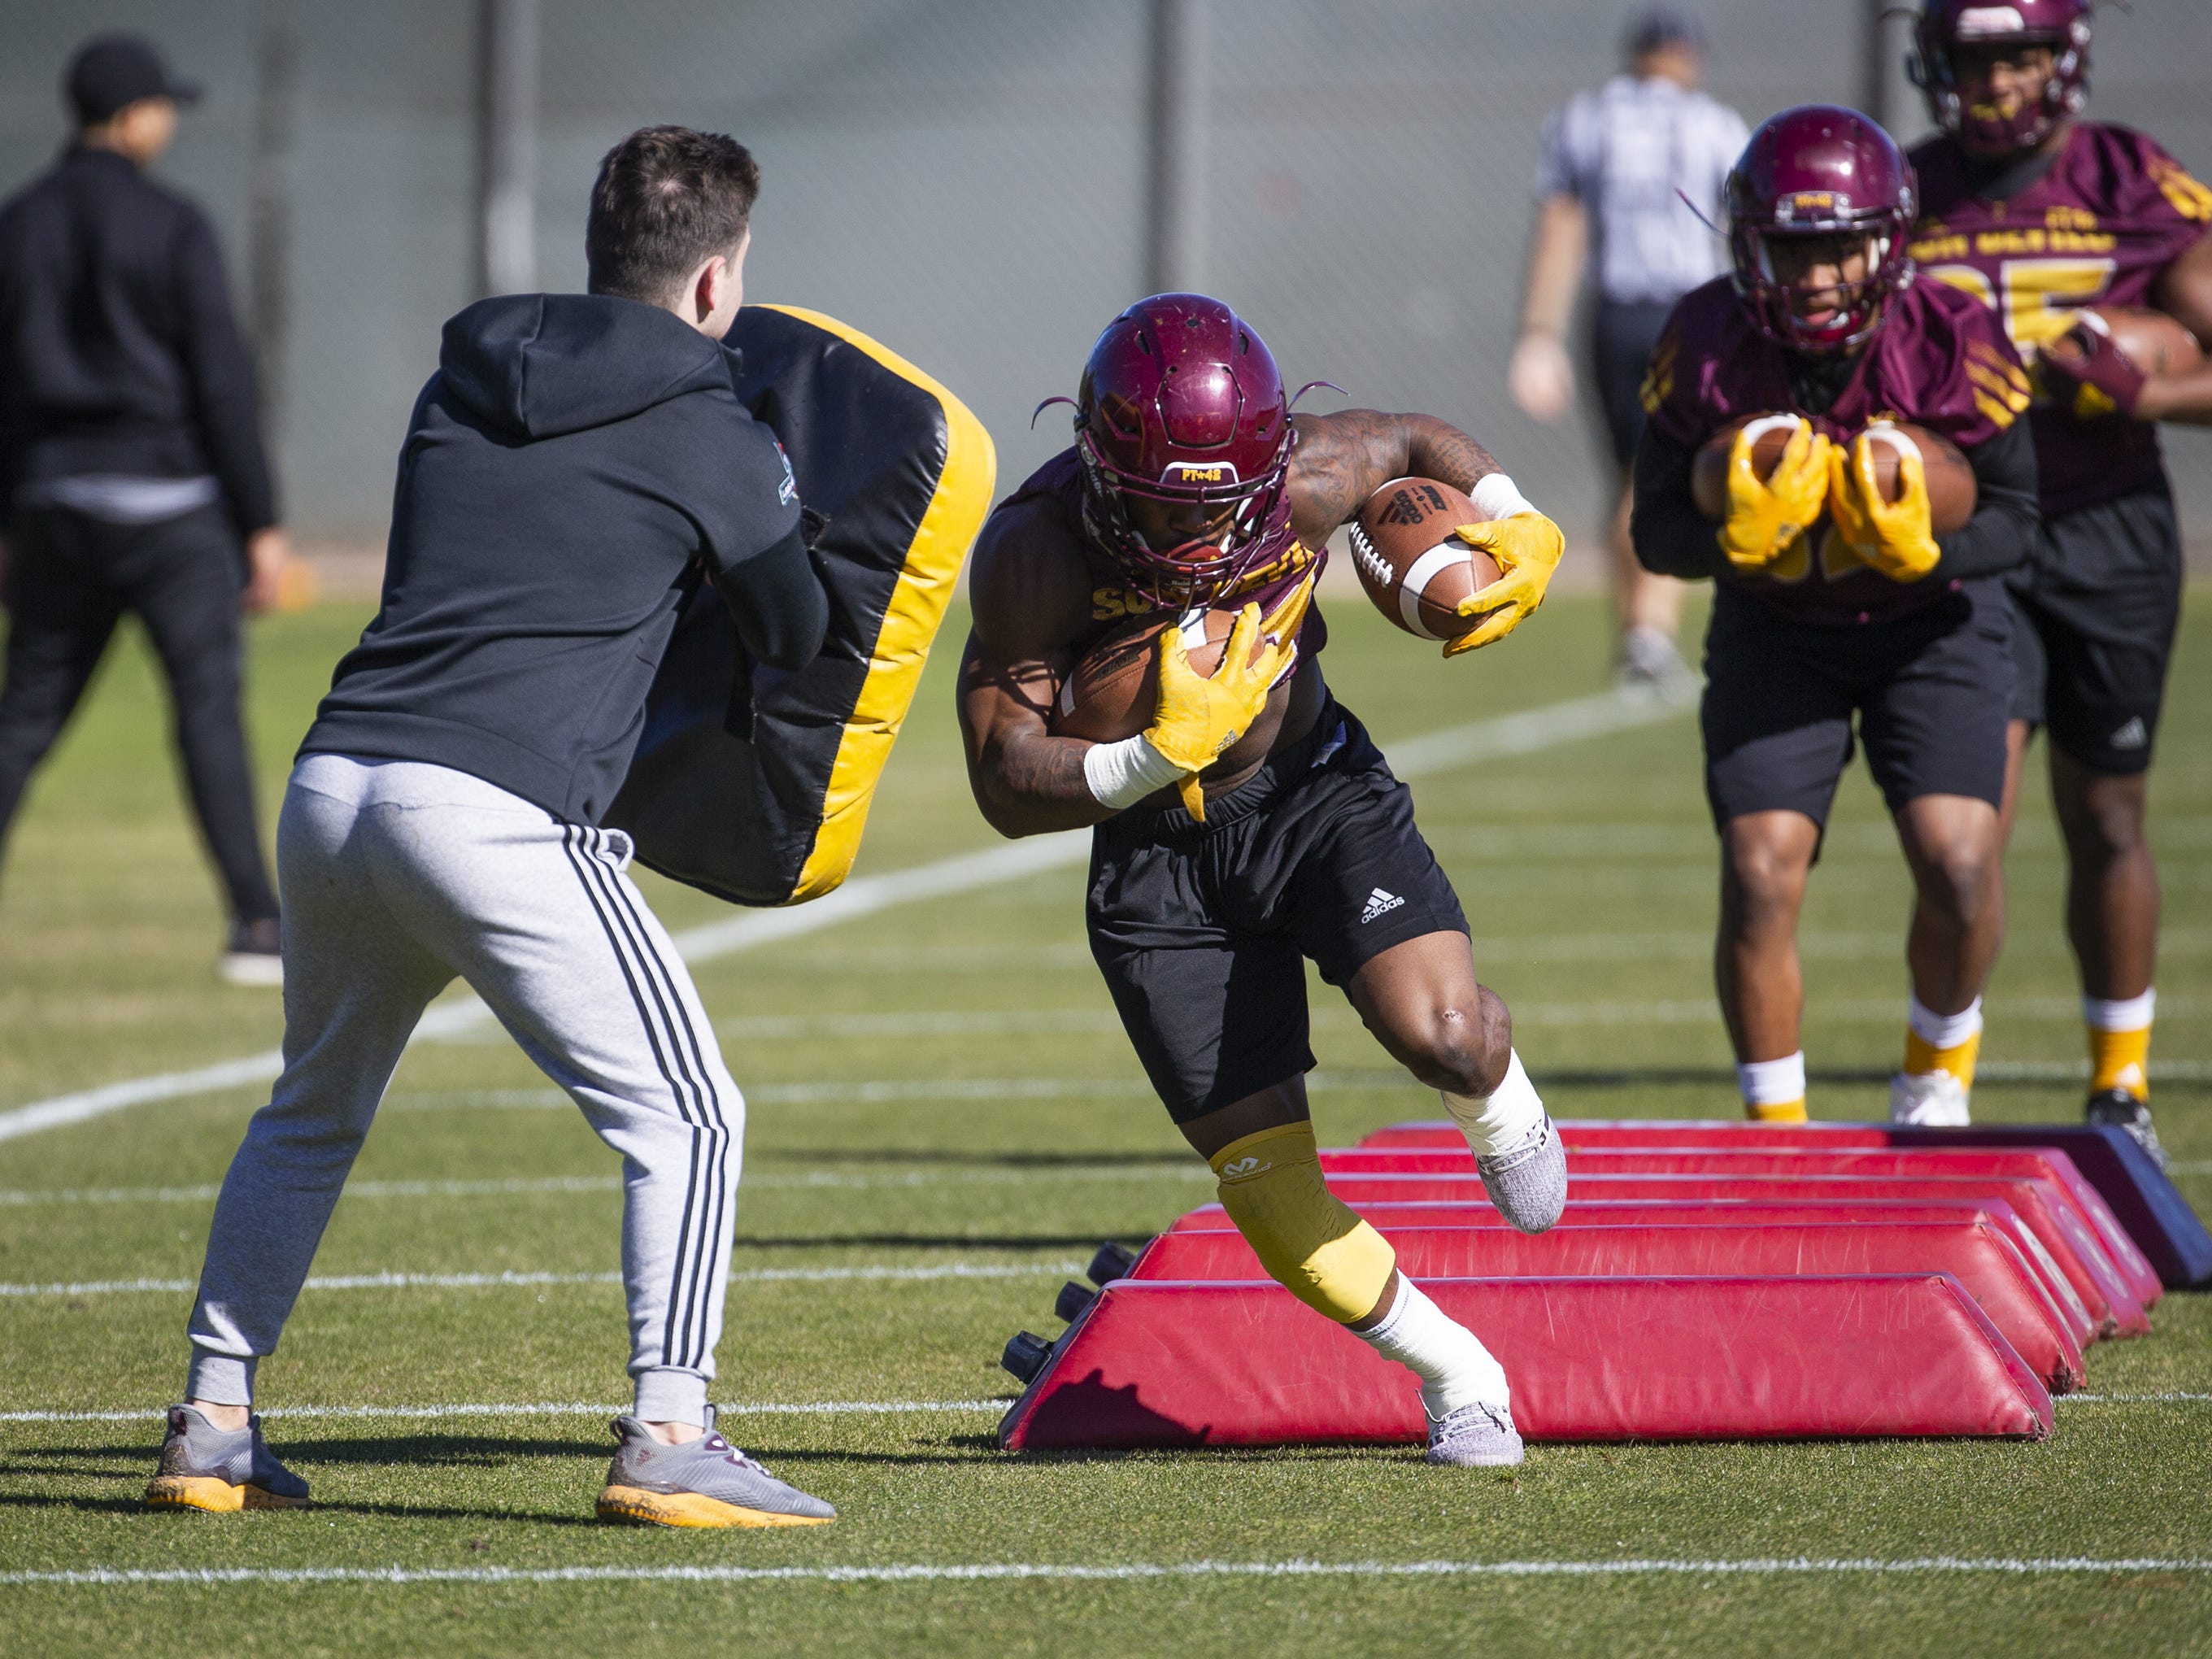 The Arizona State University football team practiced in Tempe, Tuesday, February 26, 2019.   Running back Isaiah Floyd takes a hit during drills.